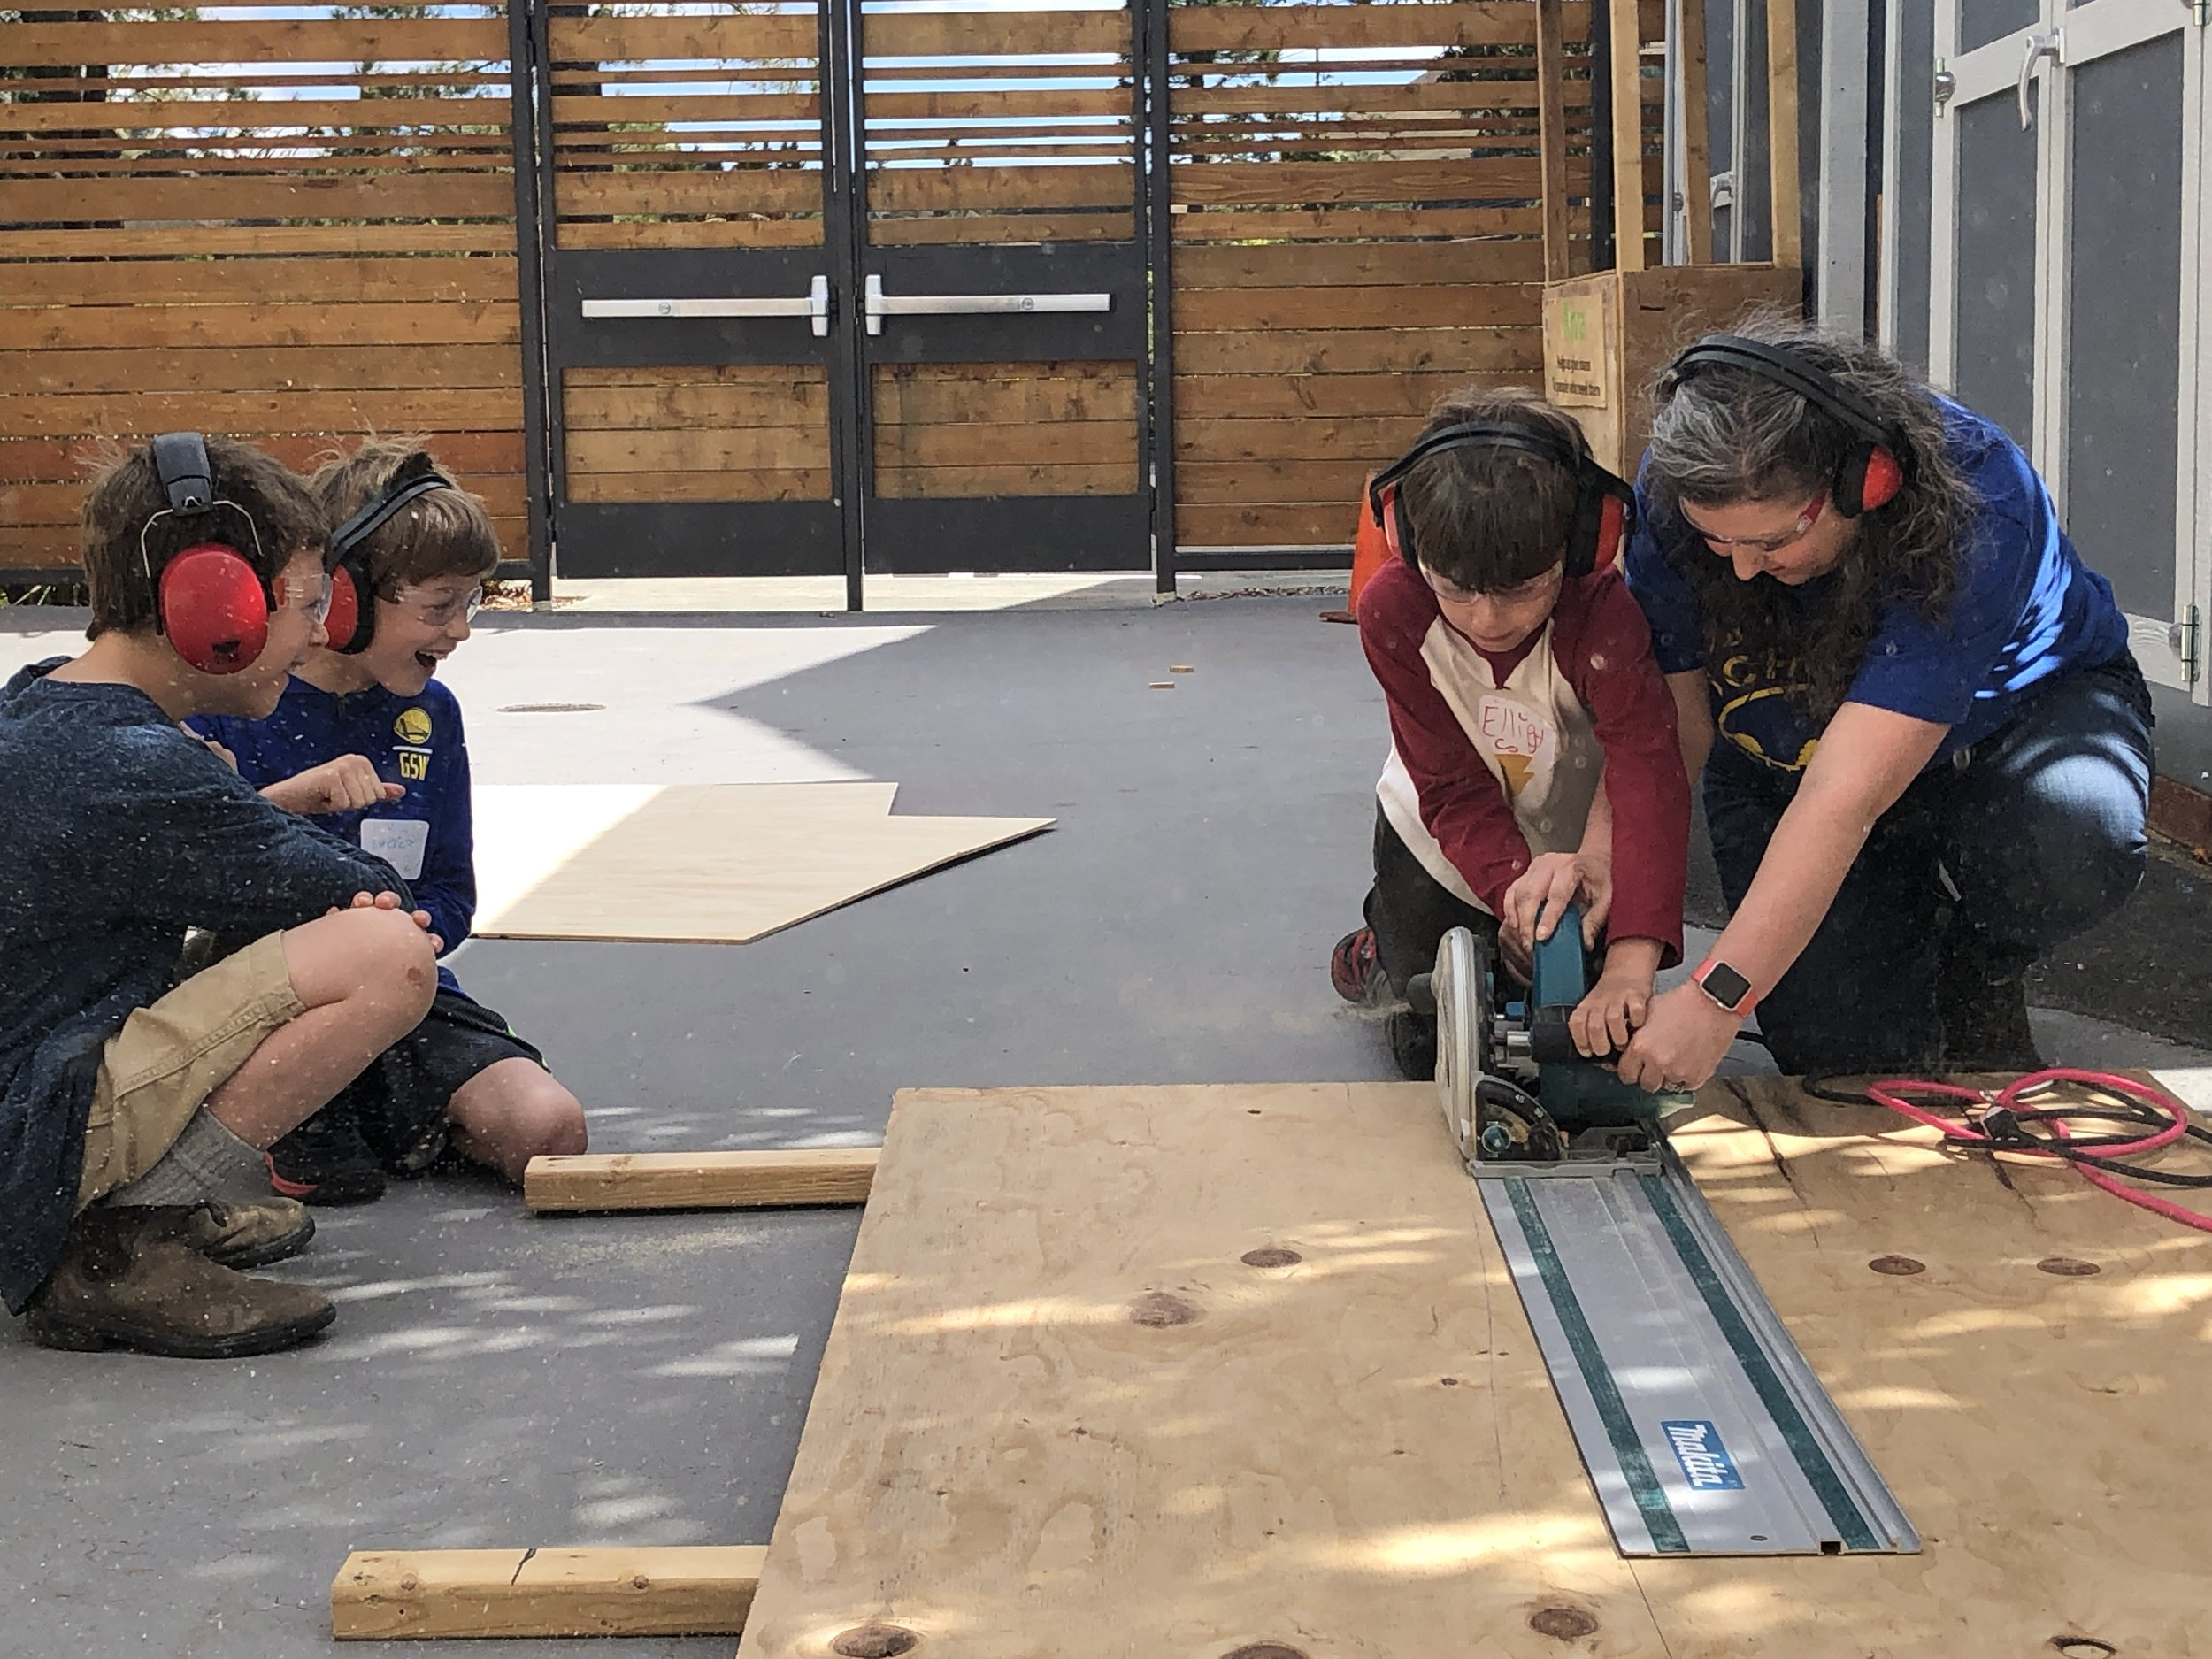 Another day, another tool! Today, a few tinkerers practiced with a circular saw which is great for helping us make straight cuts along plywood.